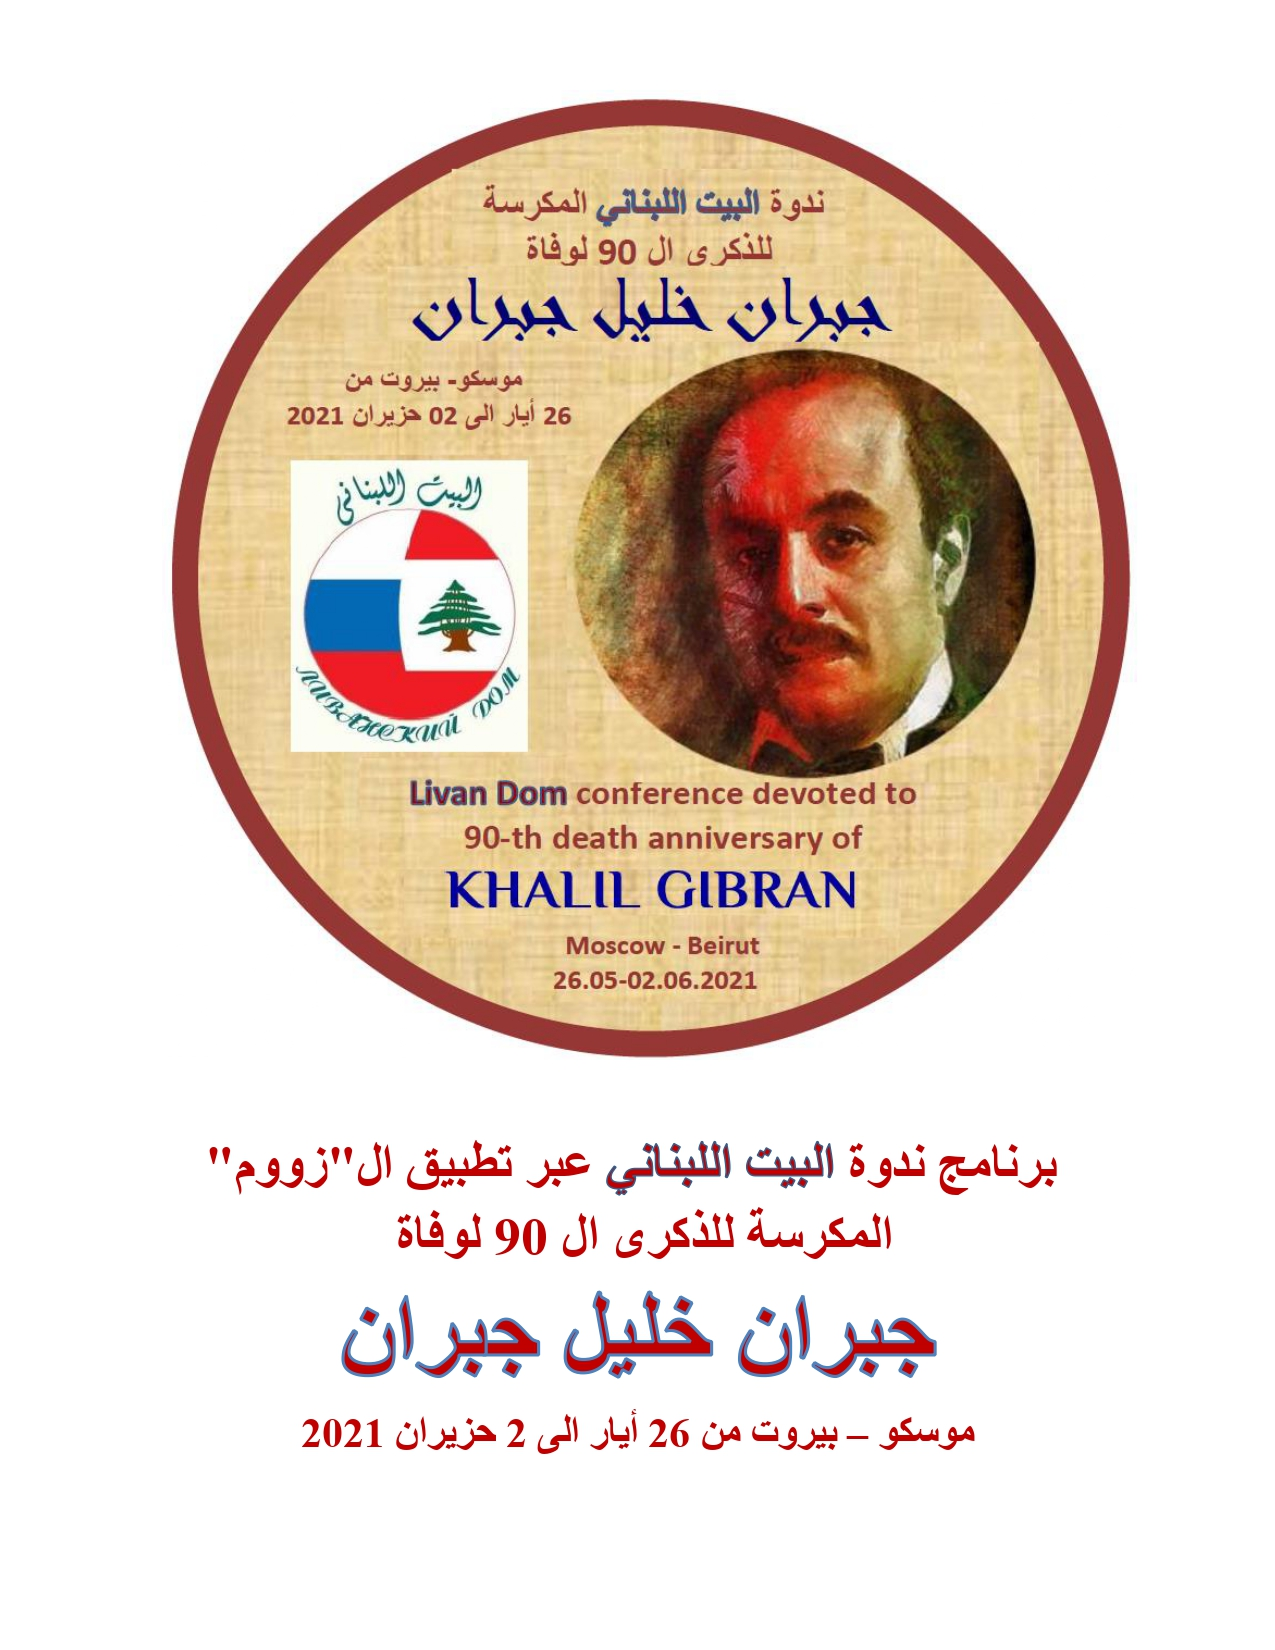 Gibran International Academic Conference (Program), Lebanese House, Moscow, May 26-27 and June 1-2, 2021